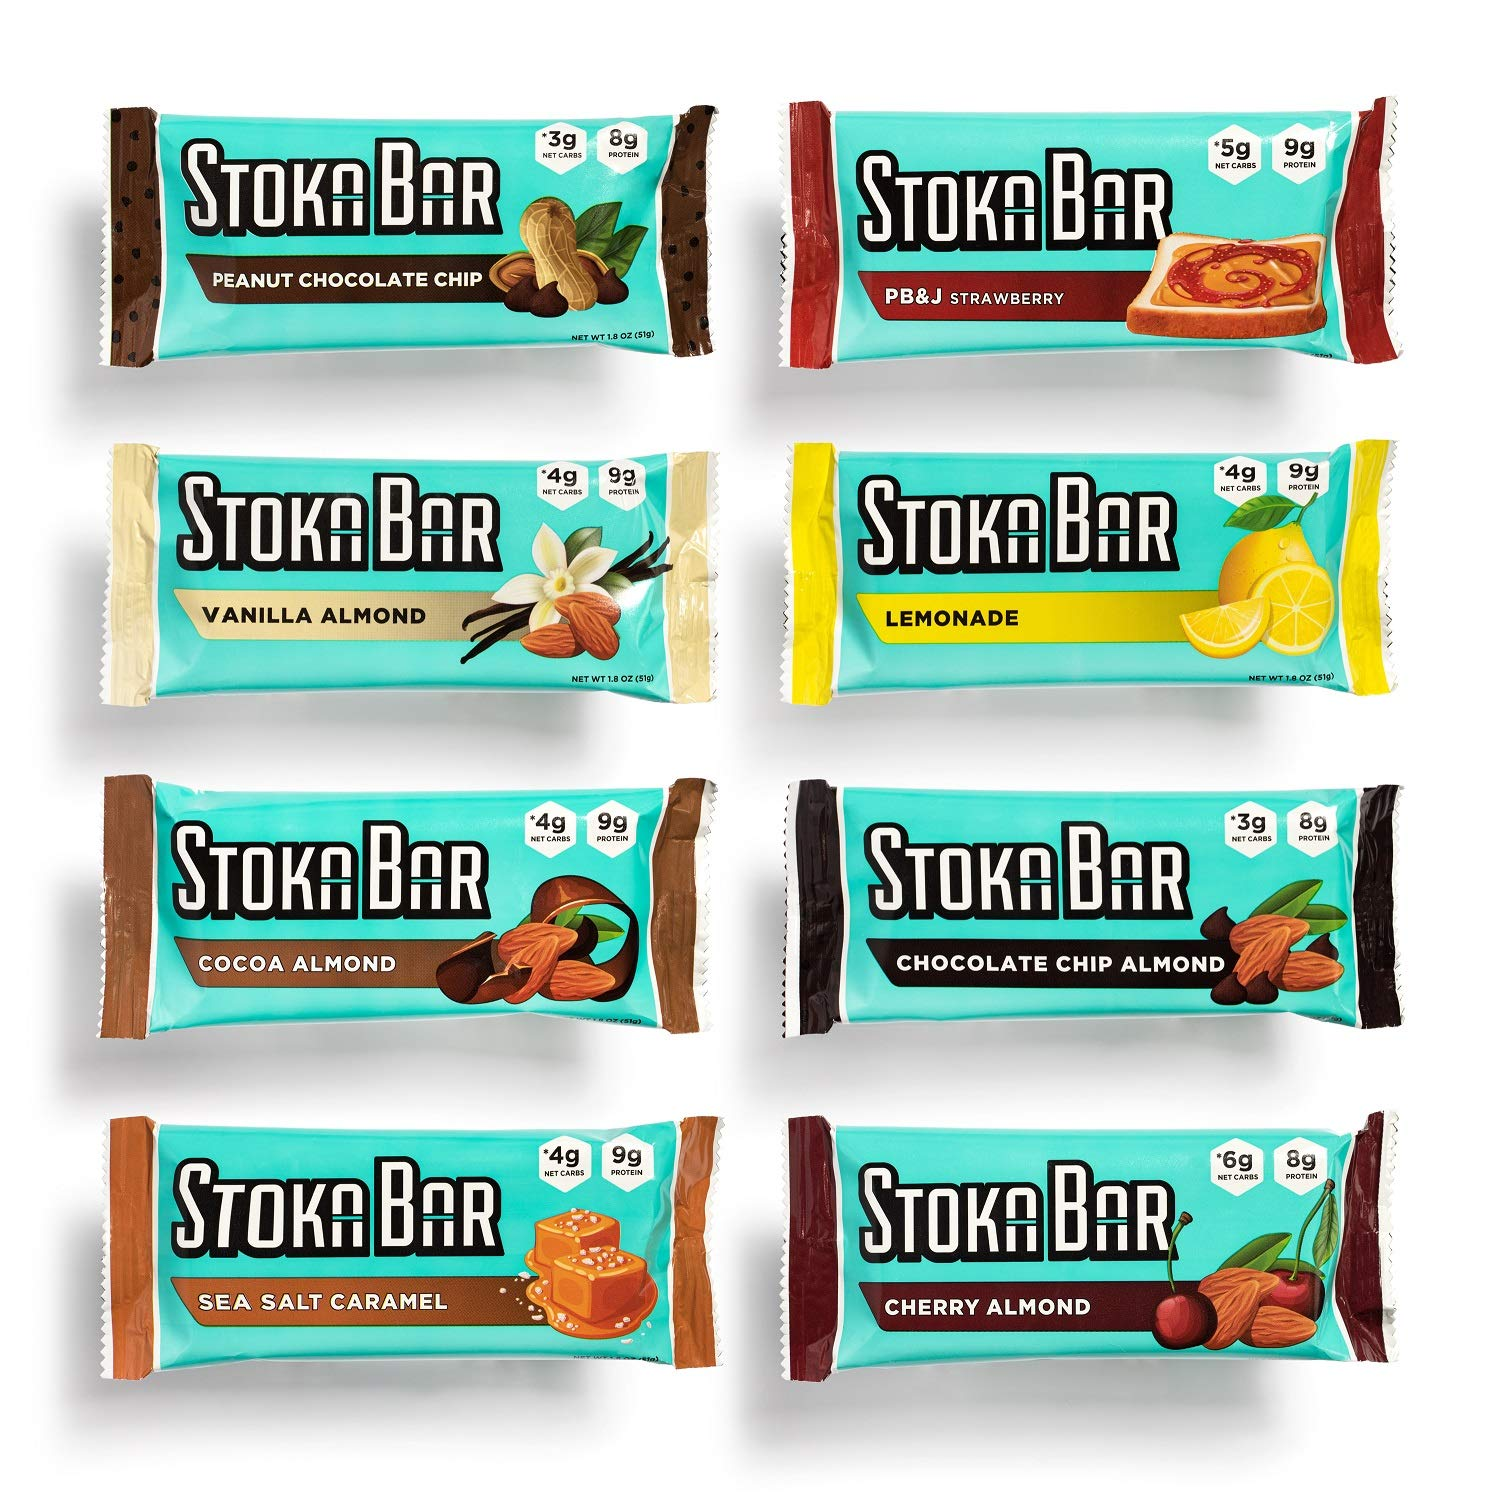 Stoka Bars| 8-Flavor Variety Pack | All Natural Energy Bar | High Protein Low Carb | Keto and Vegan Friendly | 8 Count by Stoka